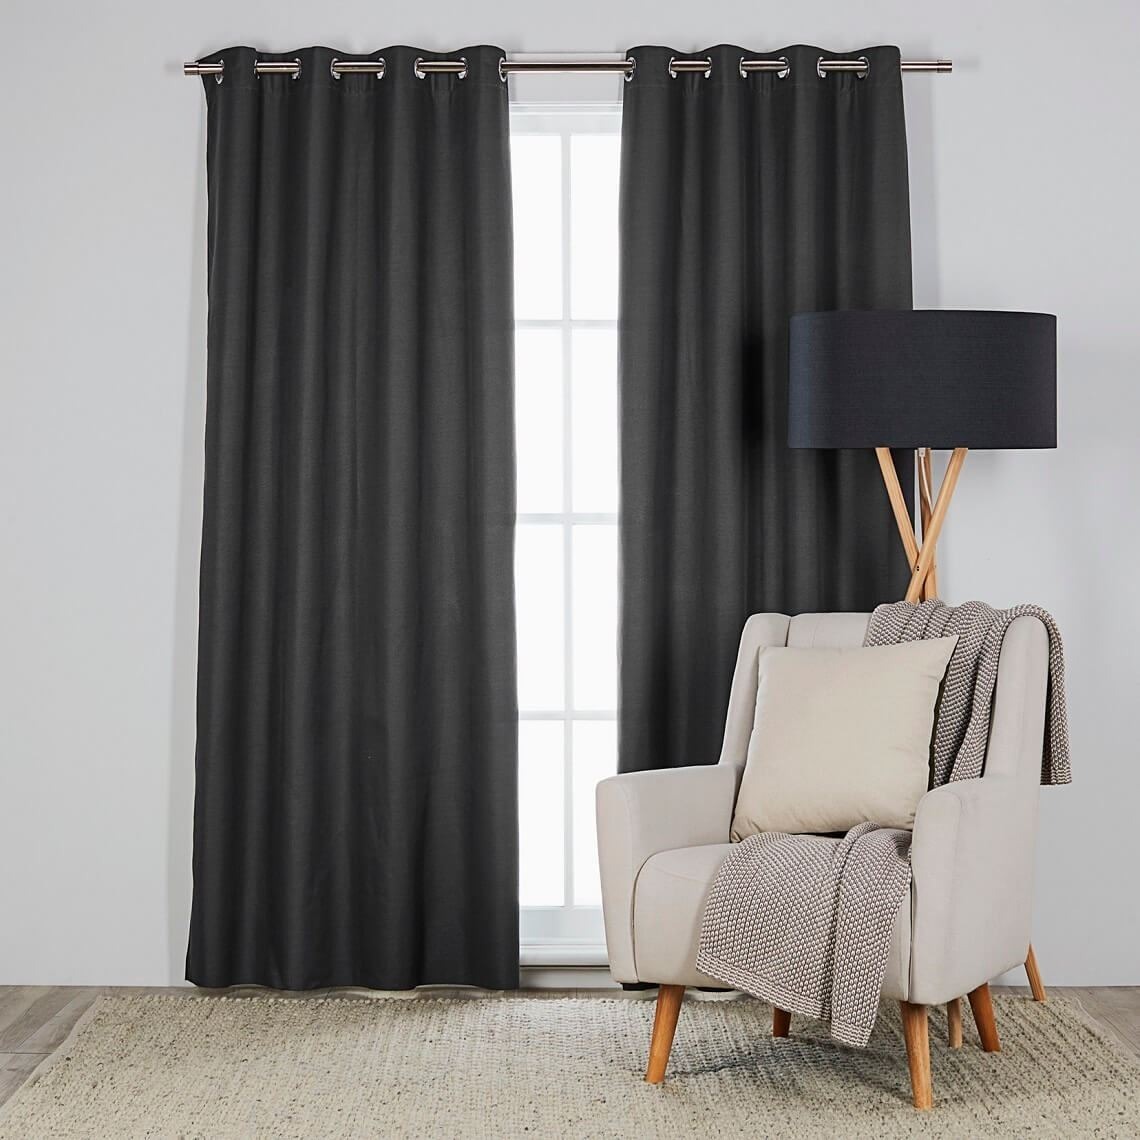 Berle Blockout Curtain Size W 180cm x D 0cm x H 260cm in Charcoal Polyester/Acrylic Flock Coating/Stainless Steel Eyelets Freedom by Freedom, a Curtains for sale on Style Sourcebook